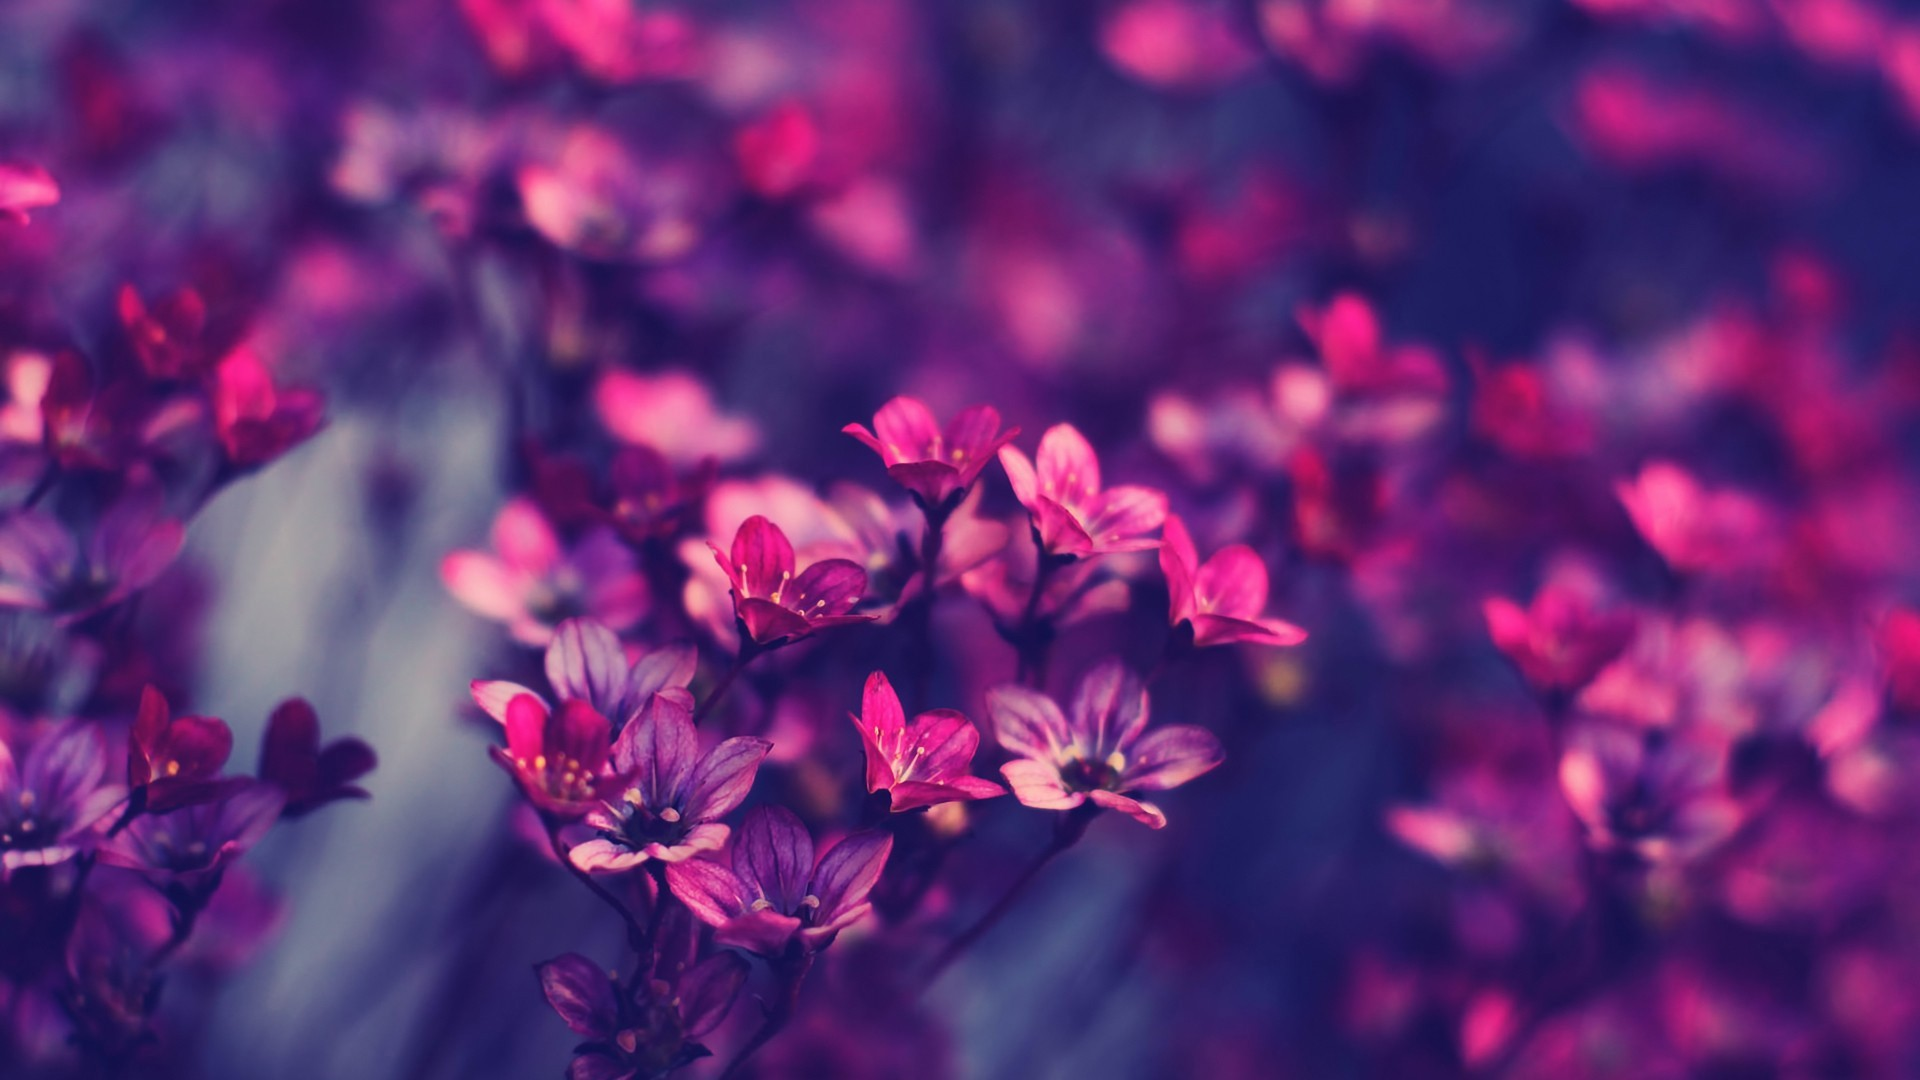 unique beautiful flowers wallpapers - photo #11